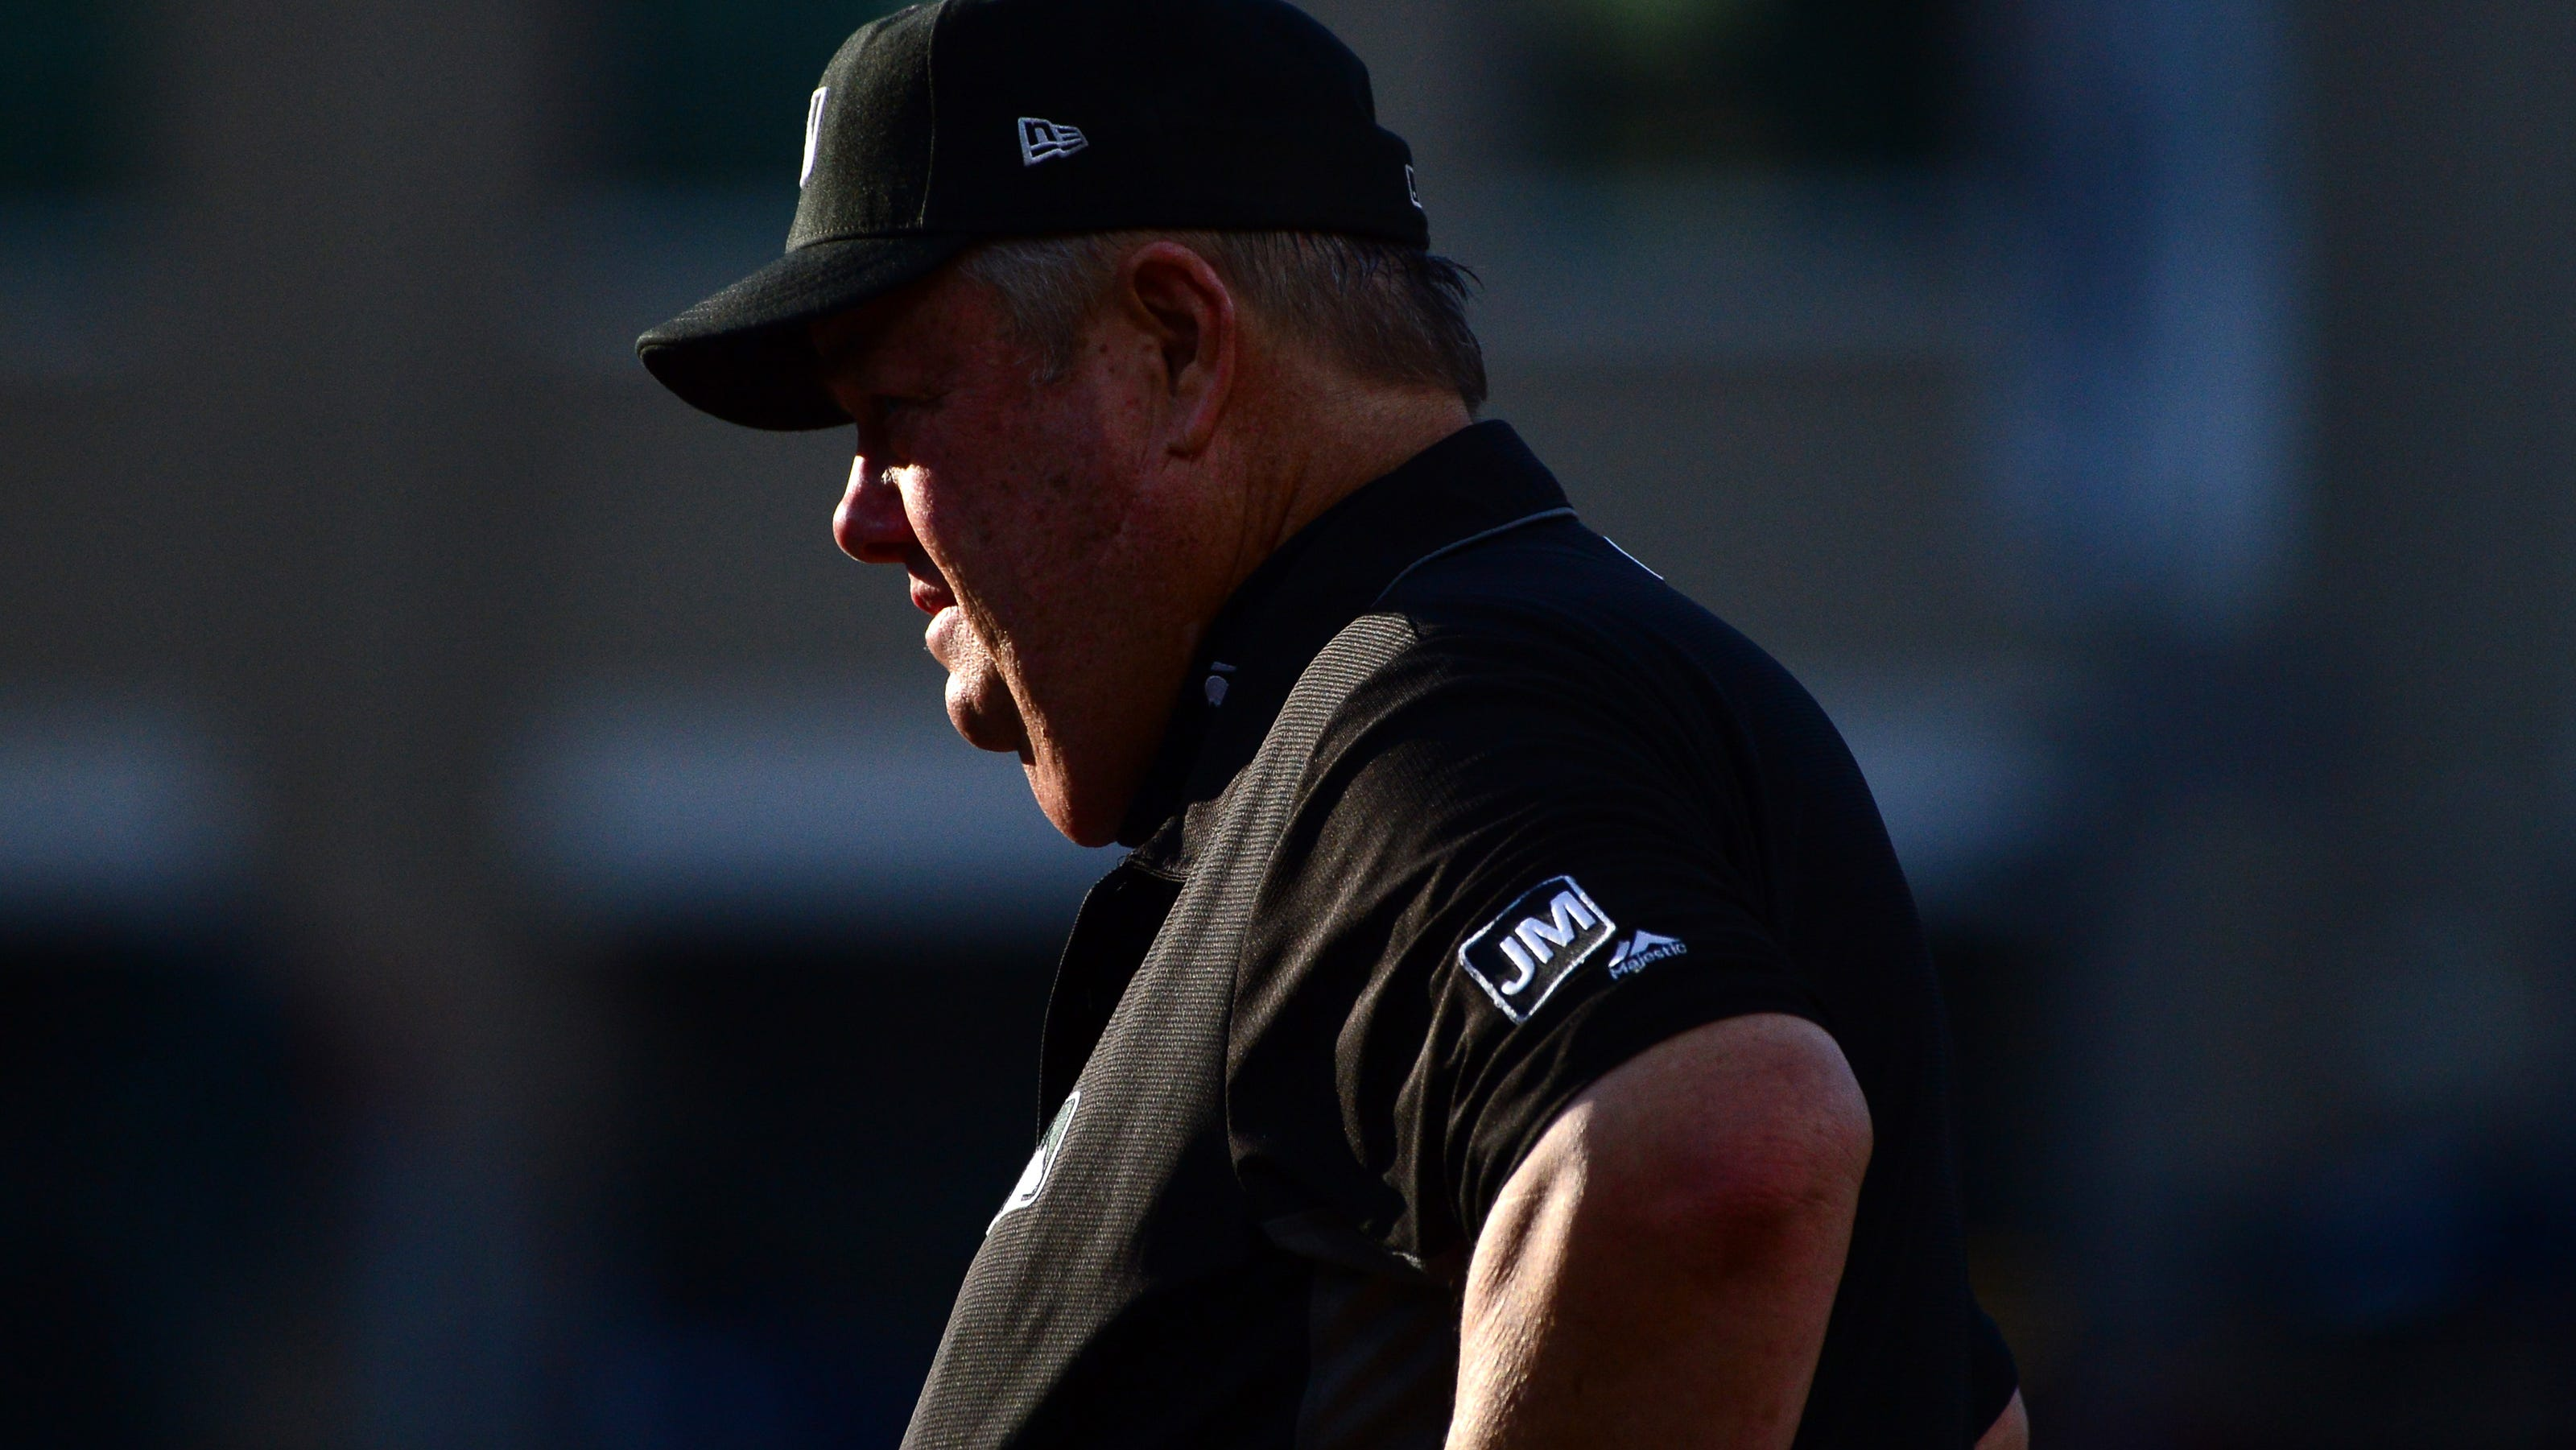 MLB umpire Joe West, 67, skeptical of coronavirus death count, won't opt out of season